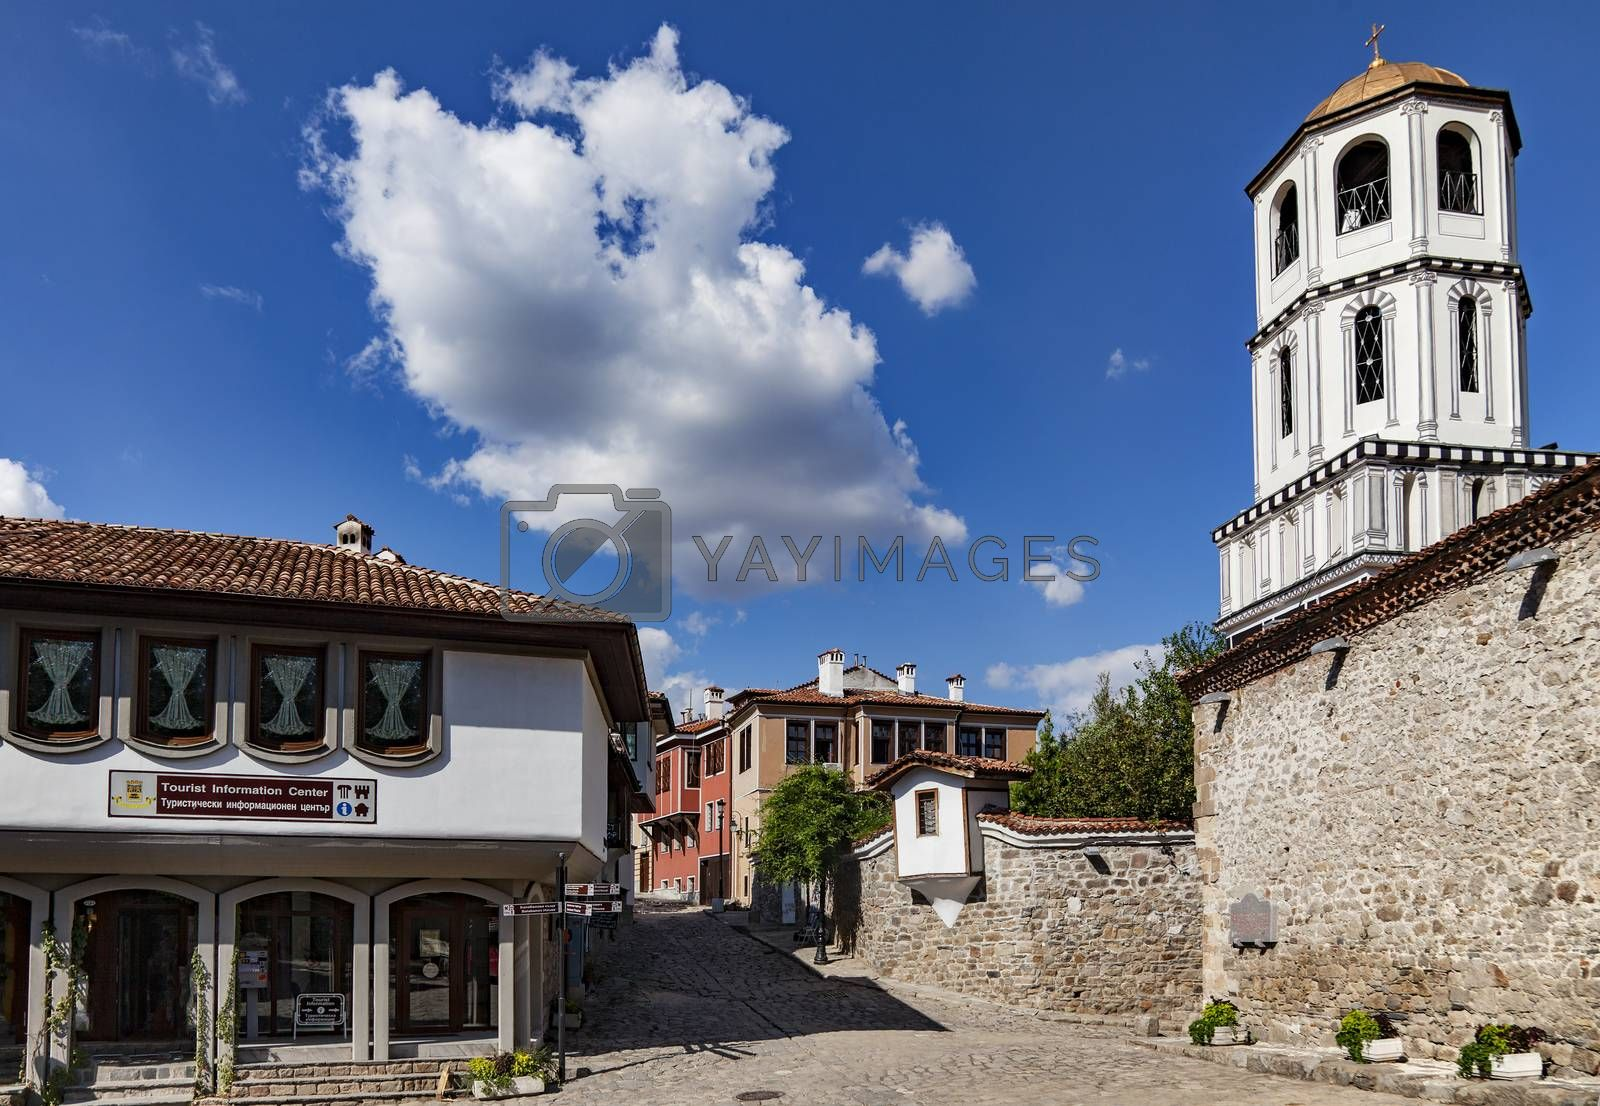 A view of one of the main streets in old town of Plovdiv, Bulgaria with the dome of St. St. Constantine and Helena church